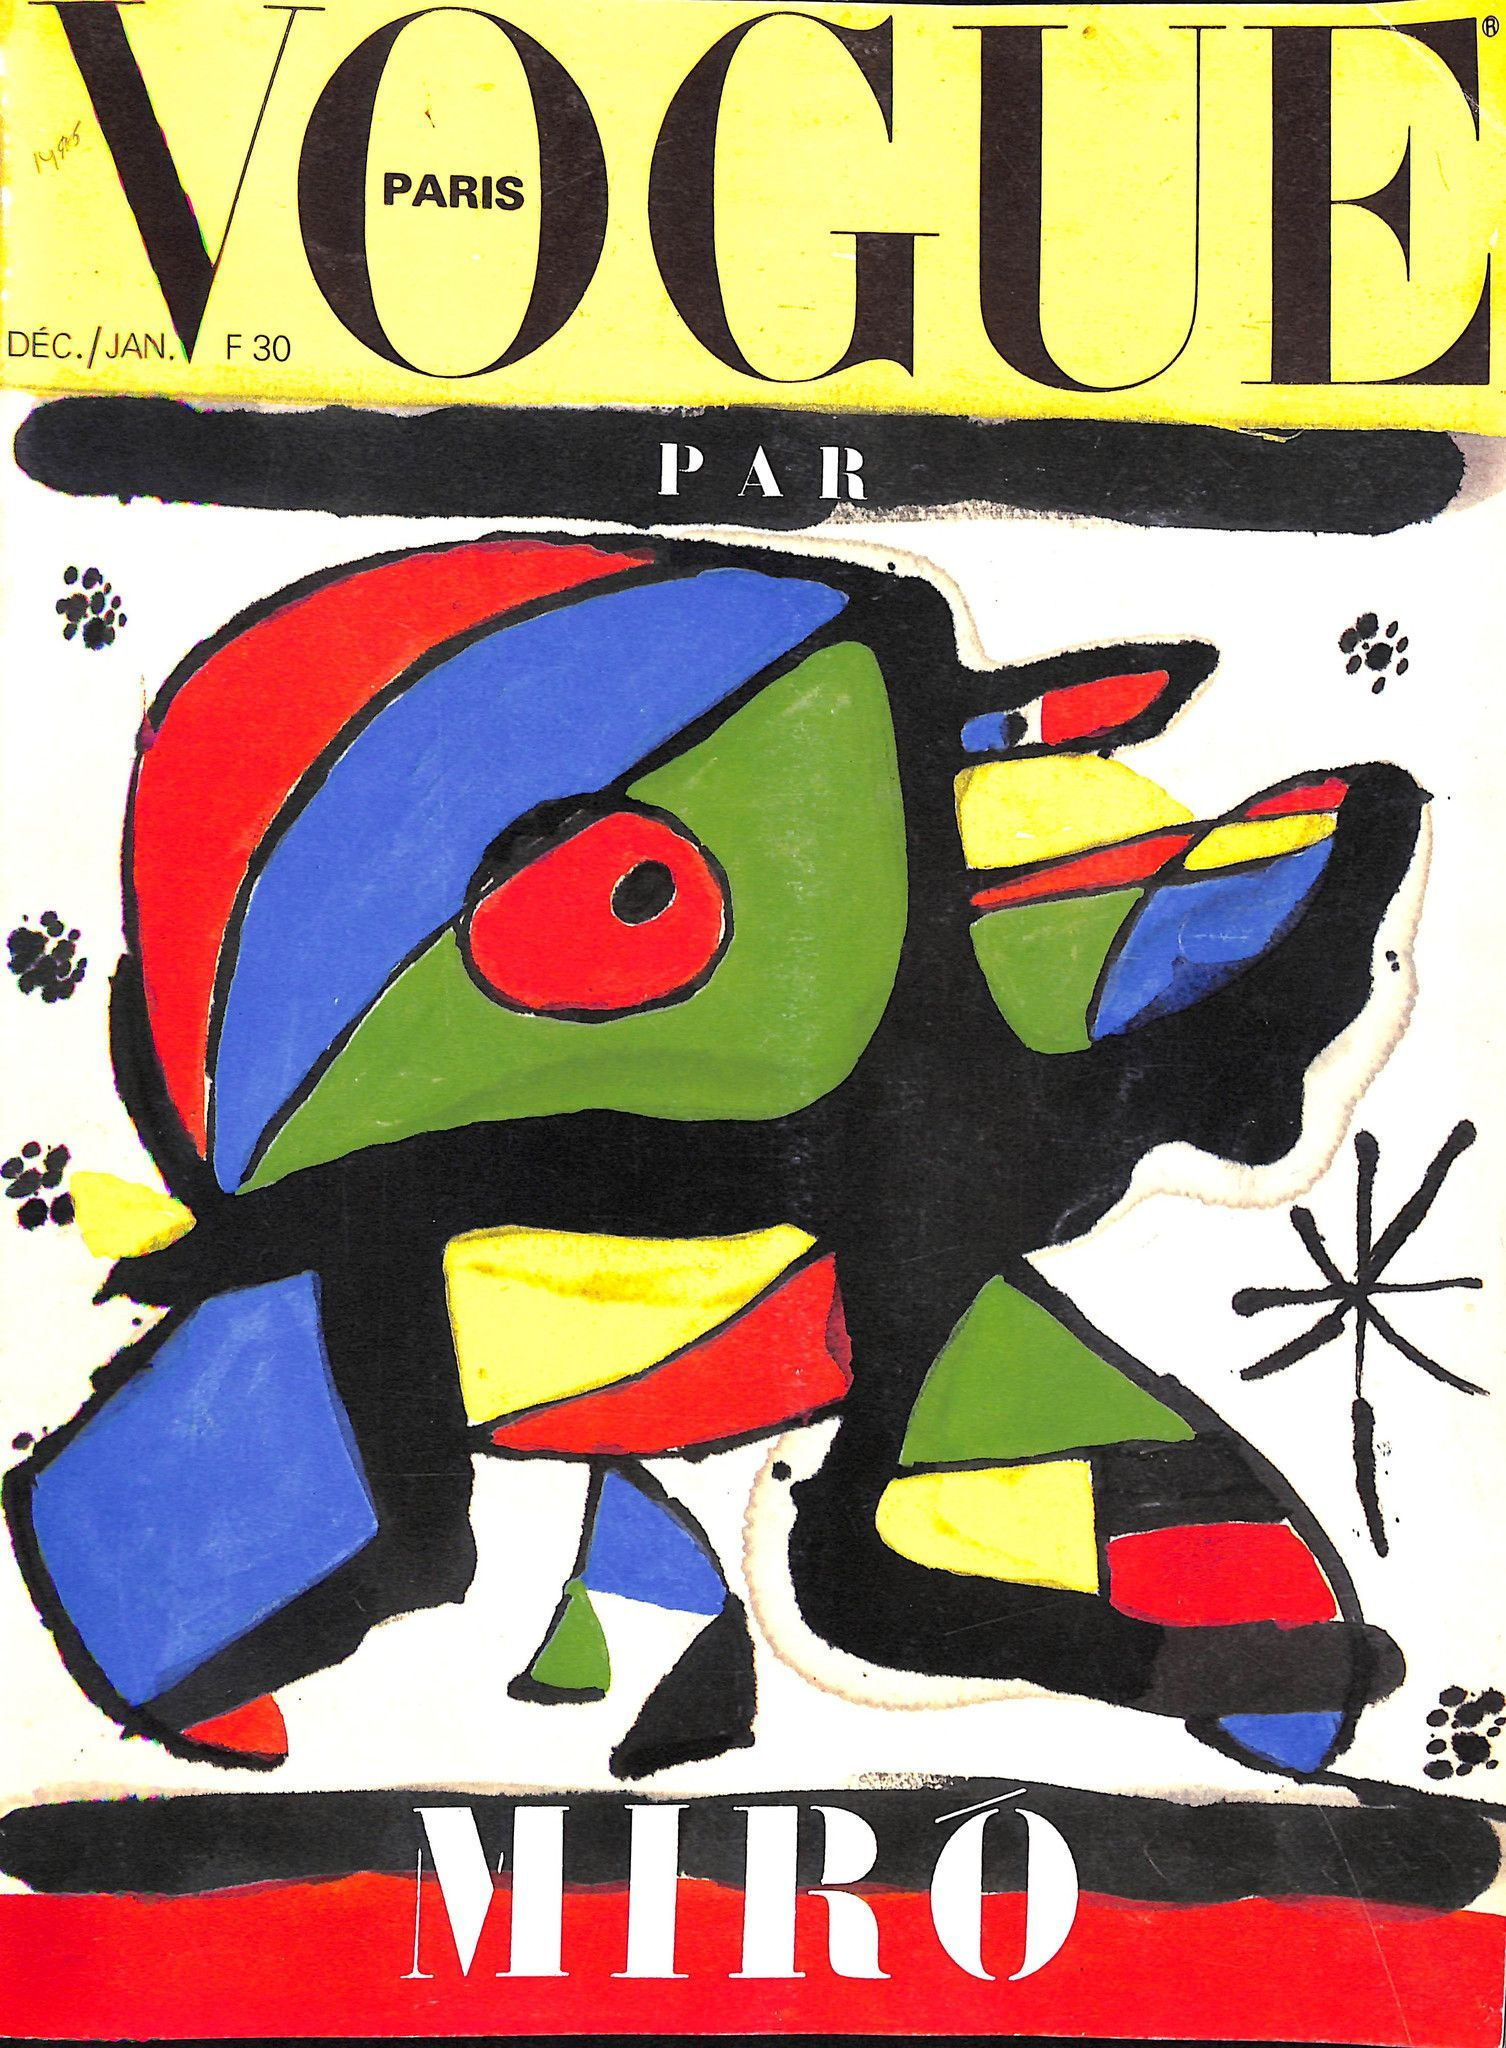 Joan Miró, Vogue cover, December 1979 issue.